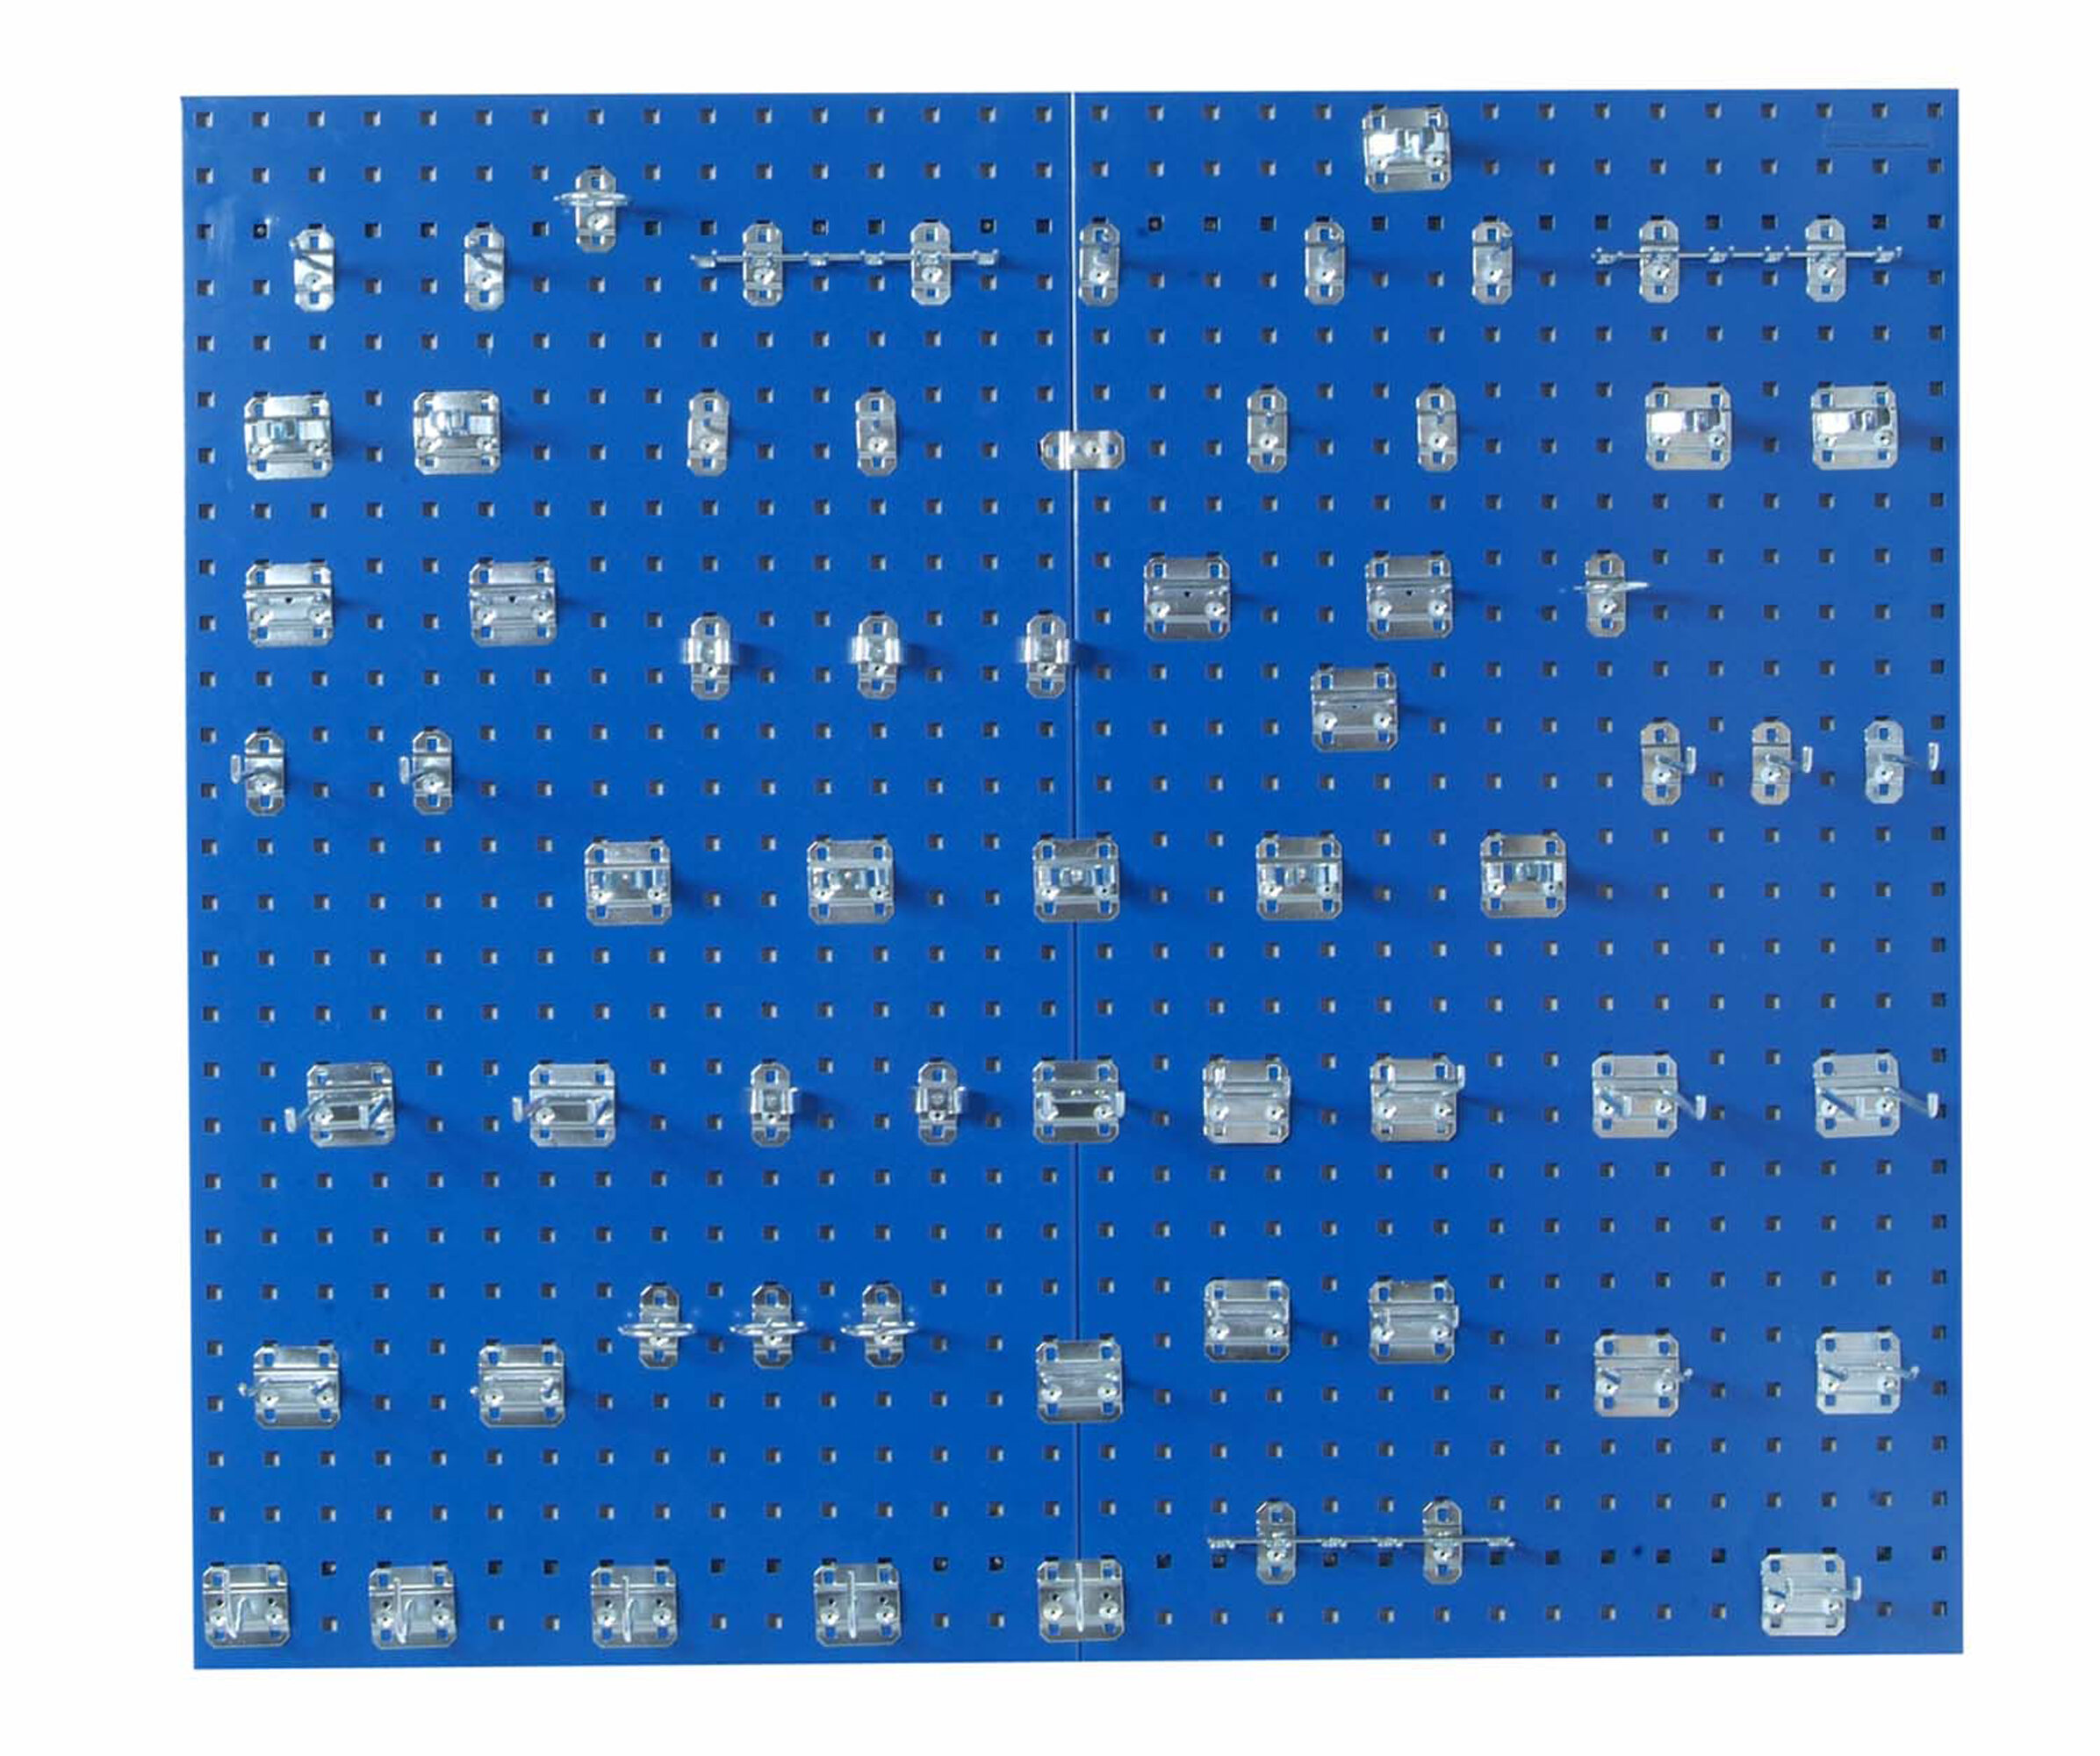 Peg Board Spacer EASY Mount Kit 12pc for pegboard